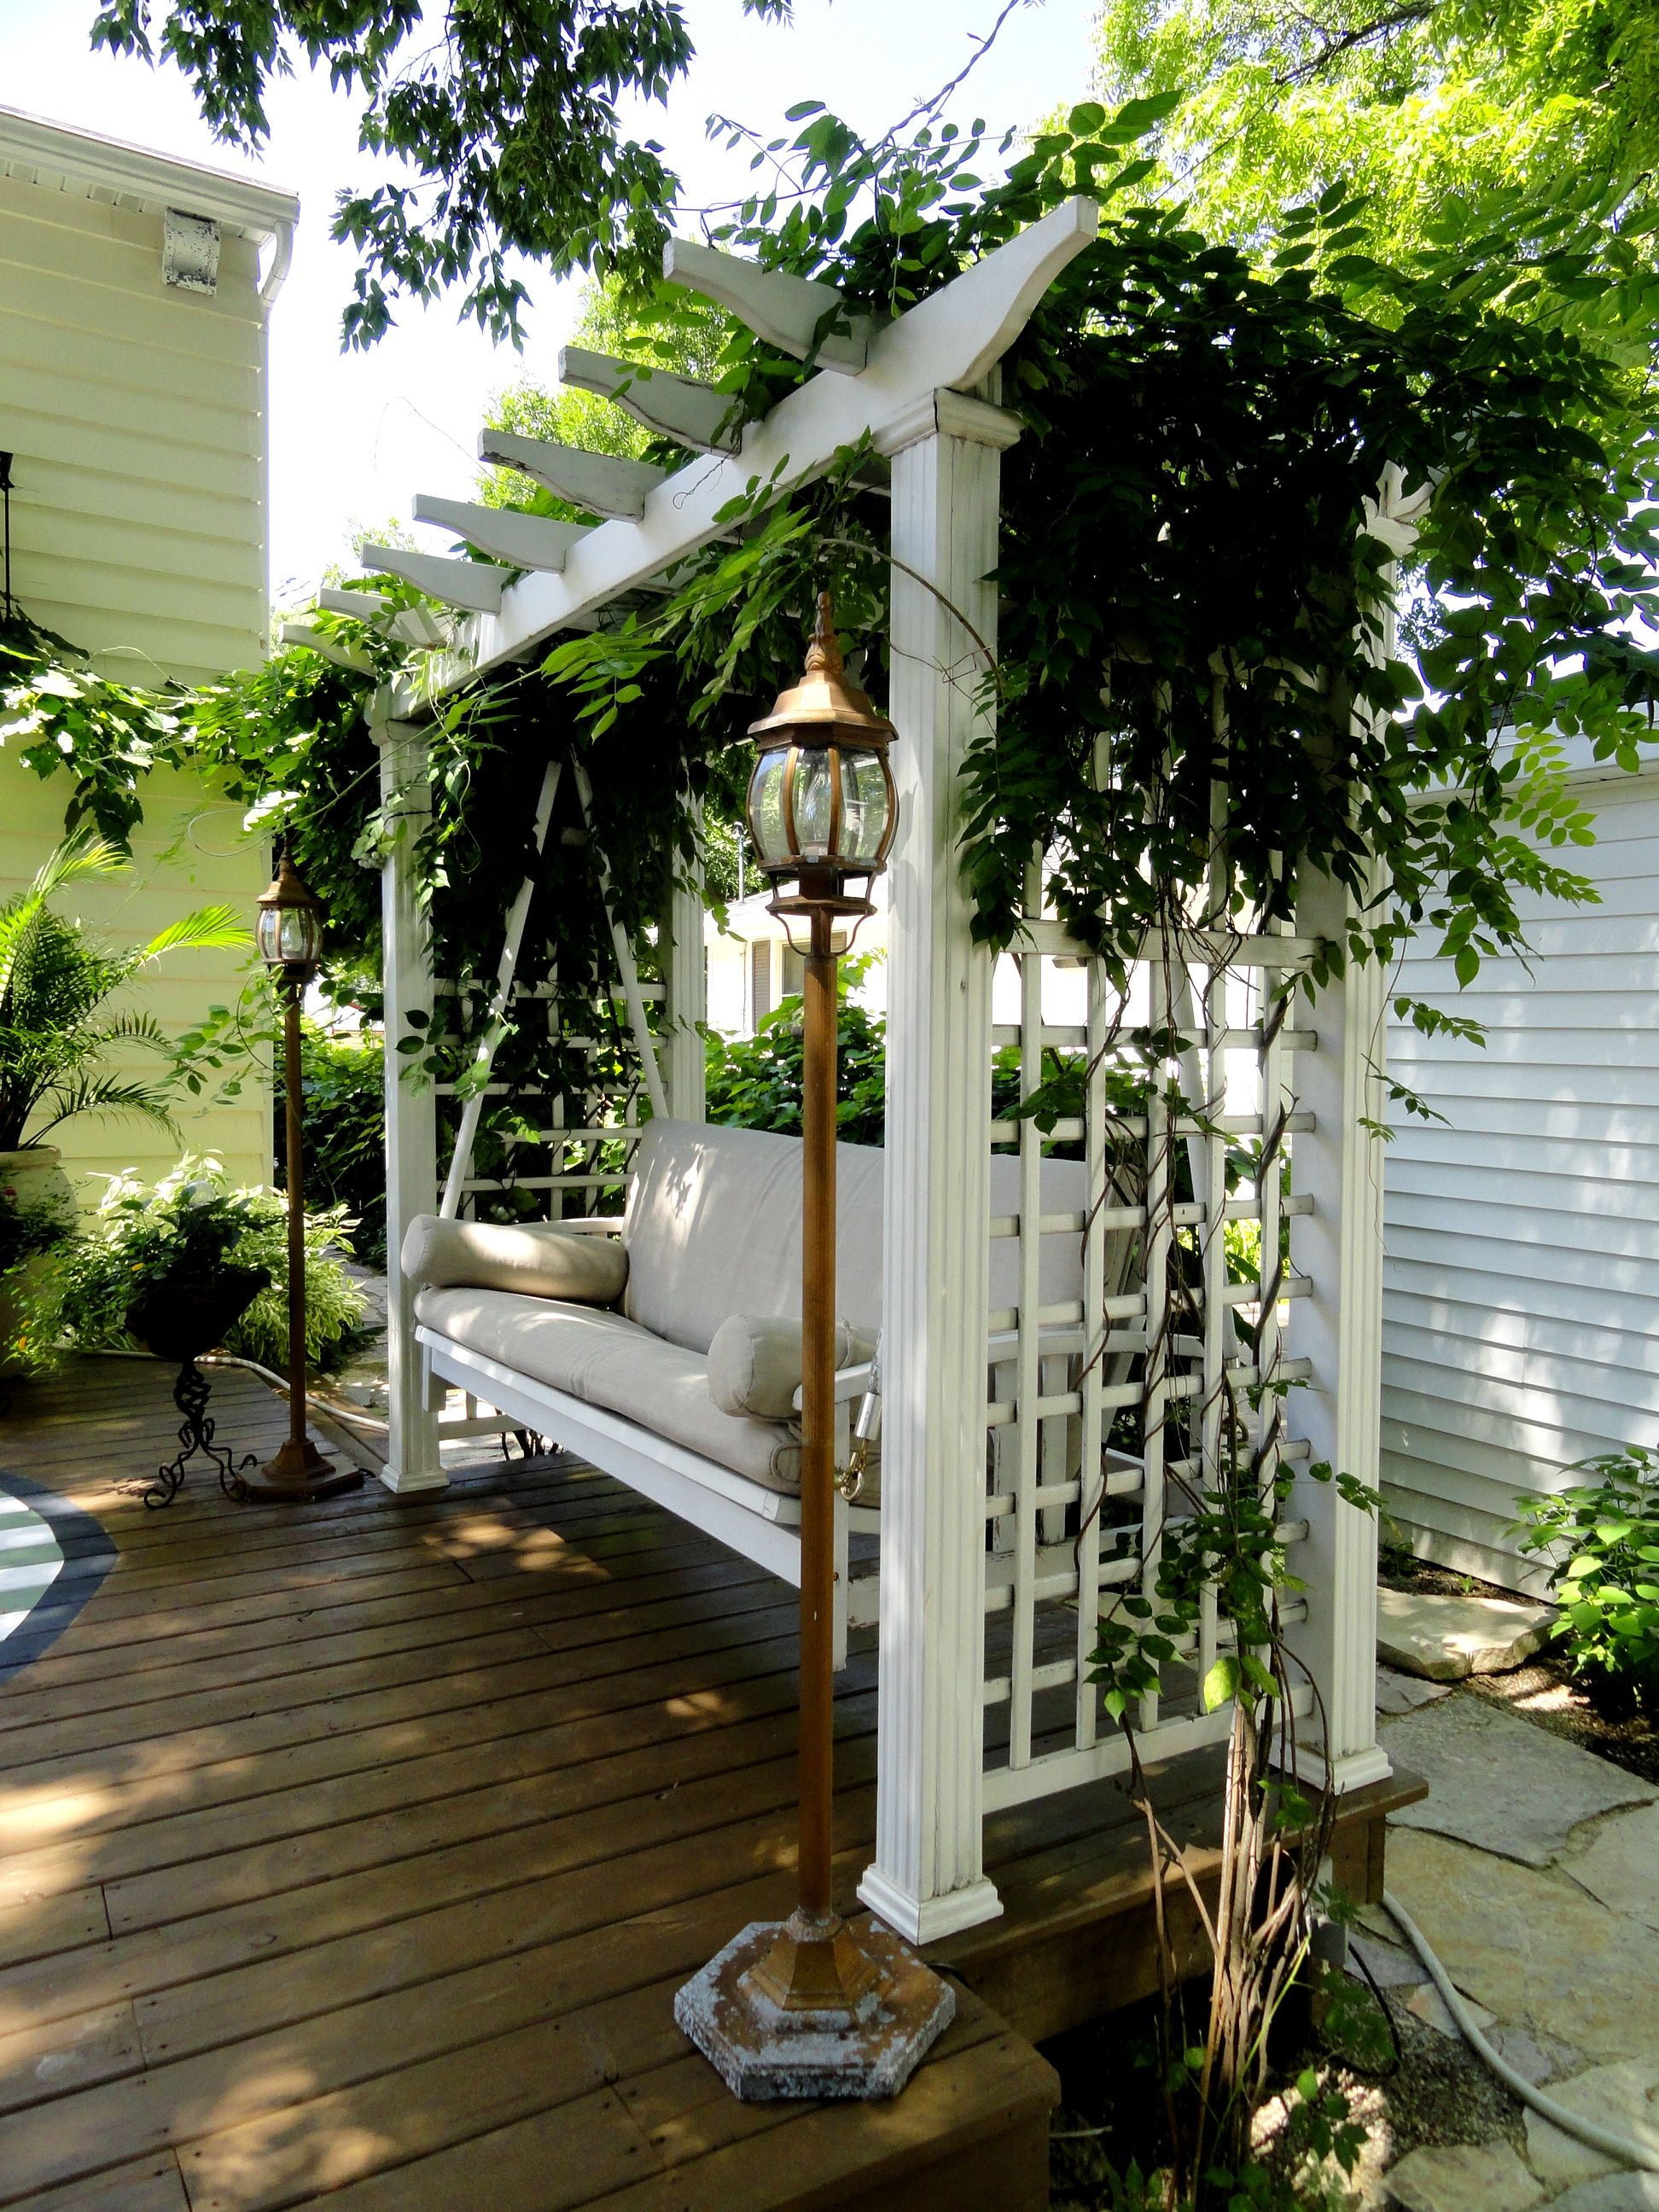 Idea for back deck trellis and bench